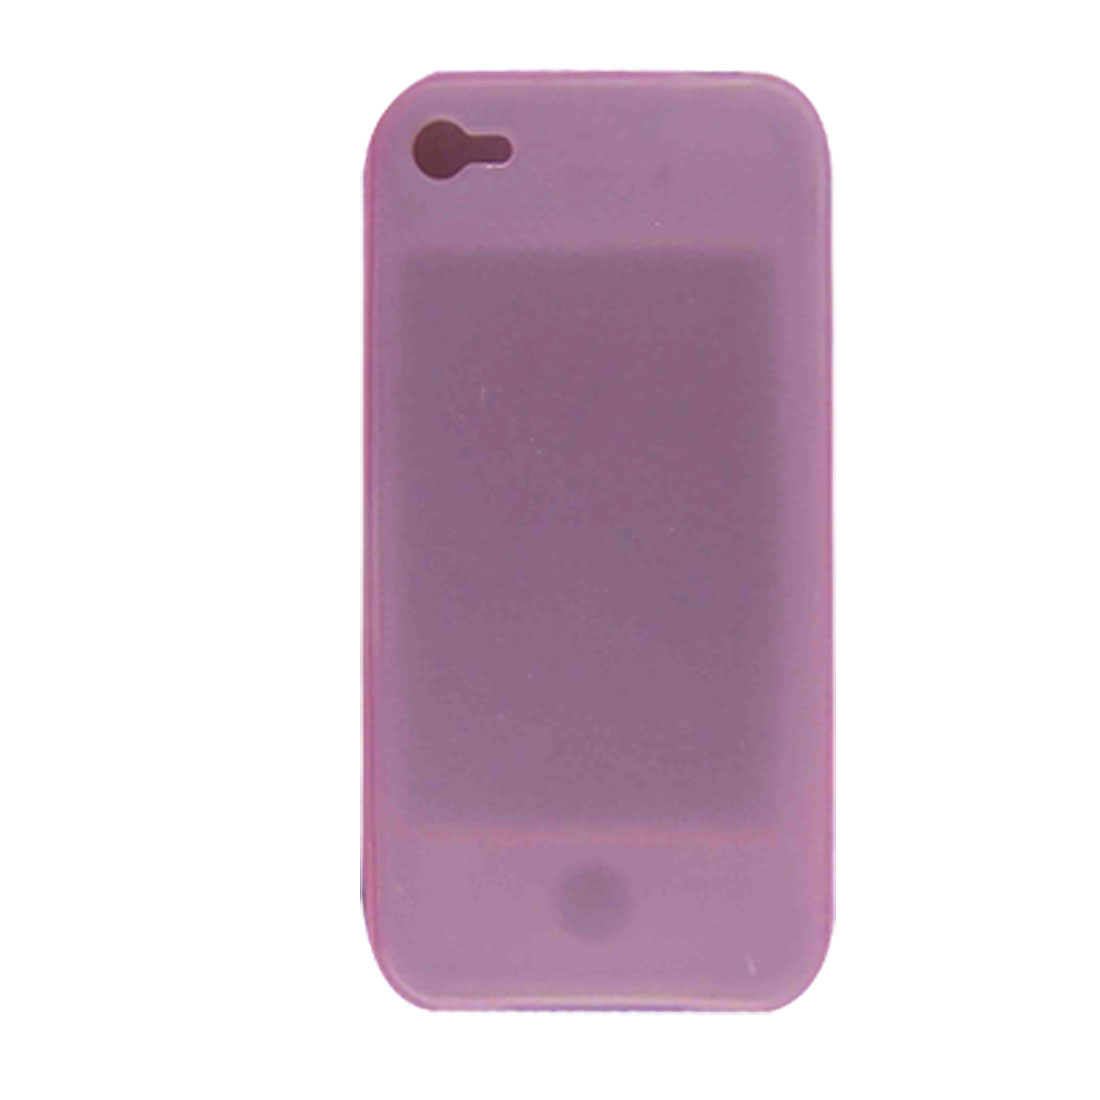 Clear Pink Soft Silicone Protector Case for Apple iPhone 4 4G